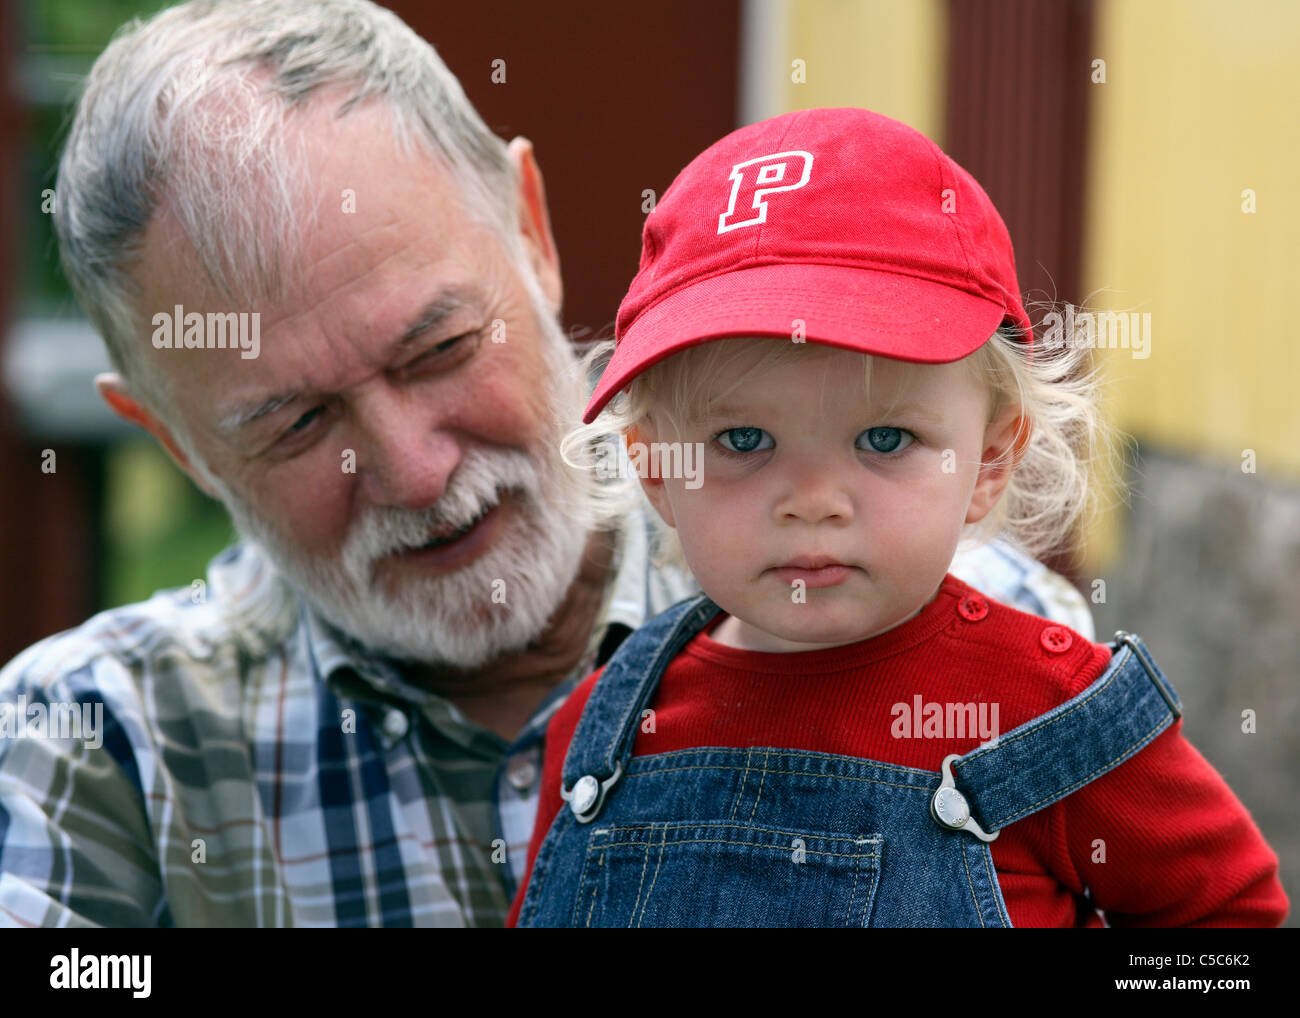 Close-up portrait of a senior man with cute grandkid Photo Stock